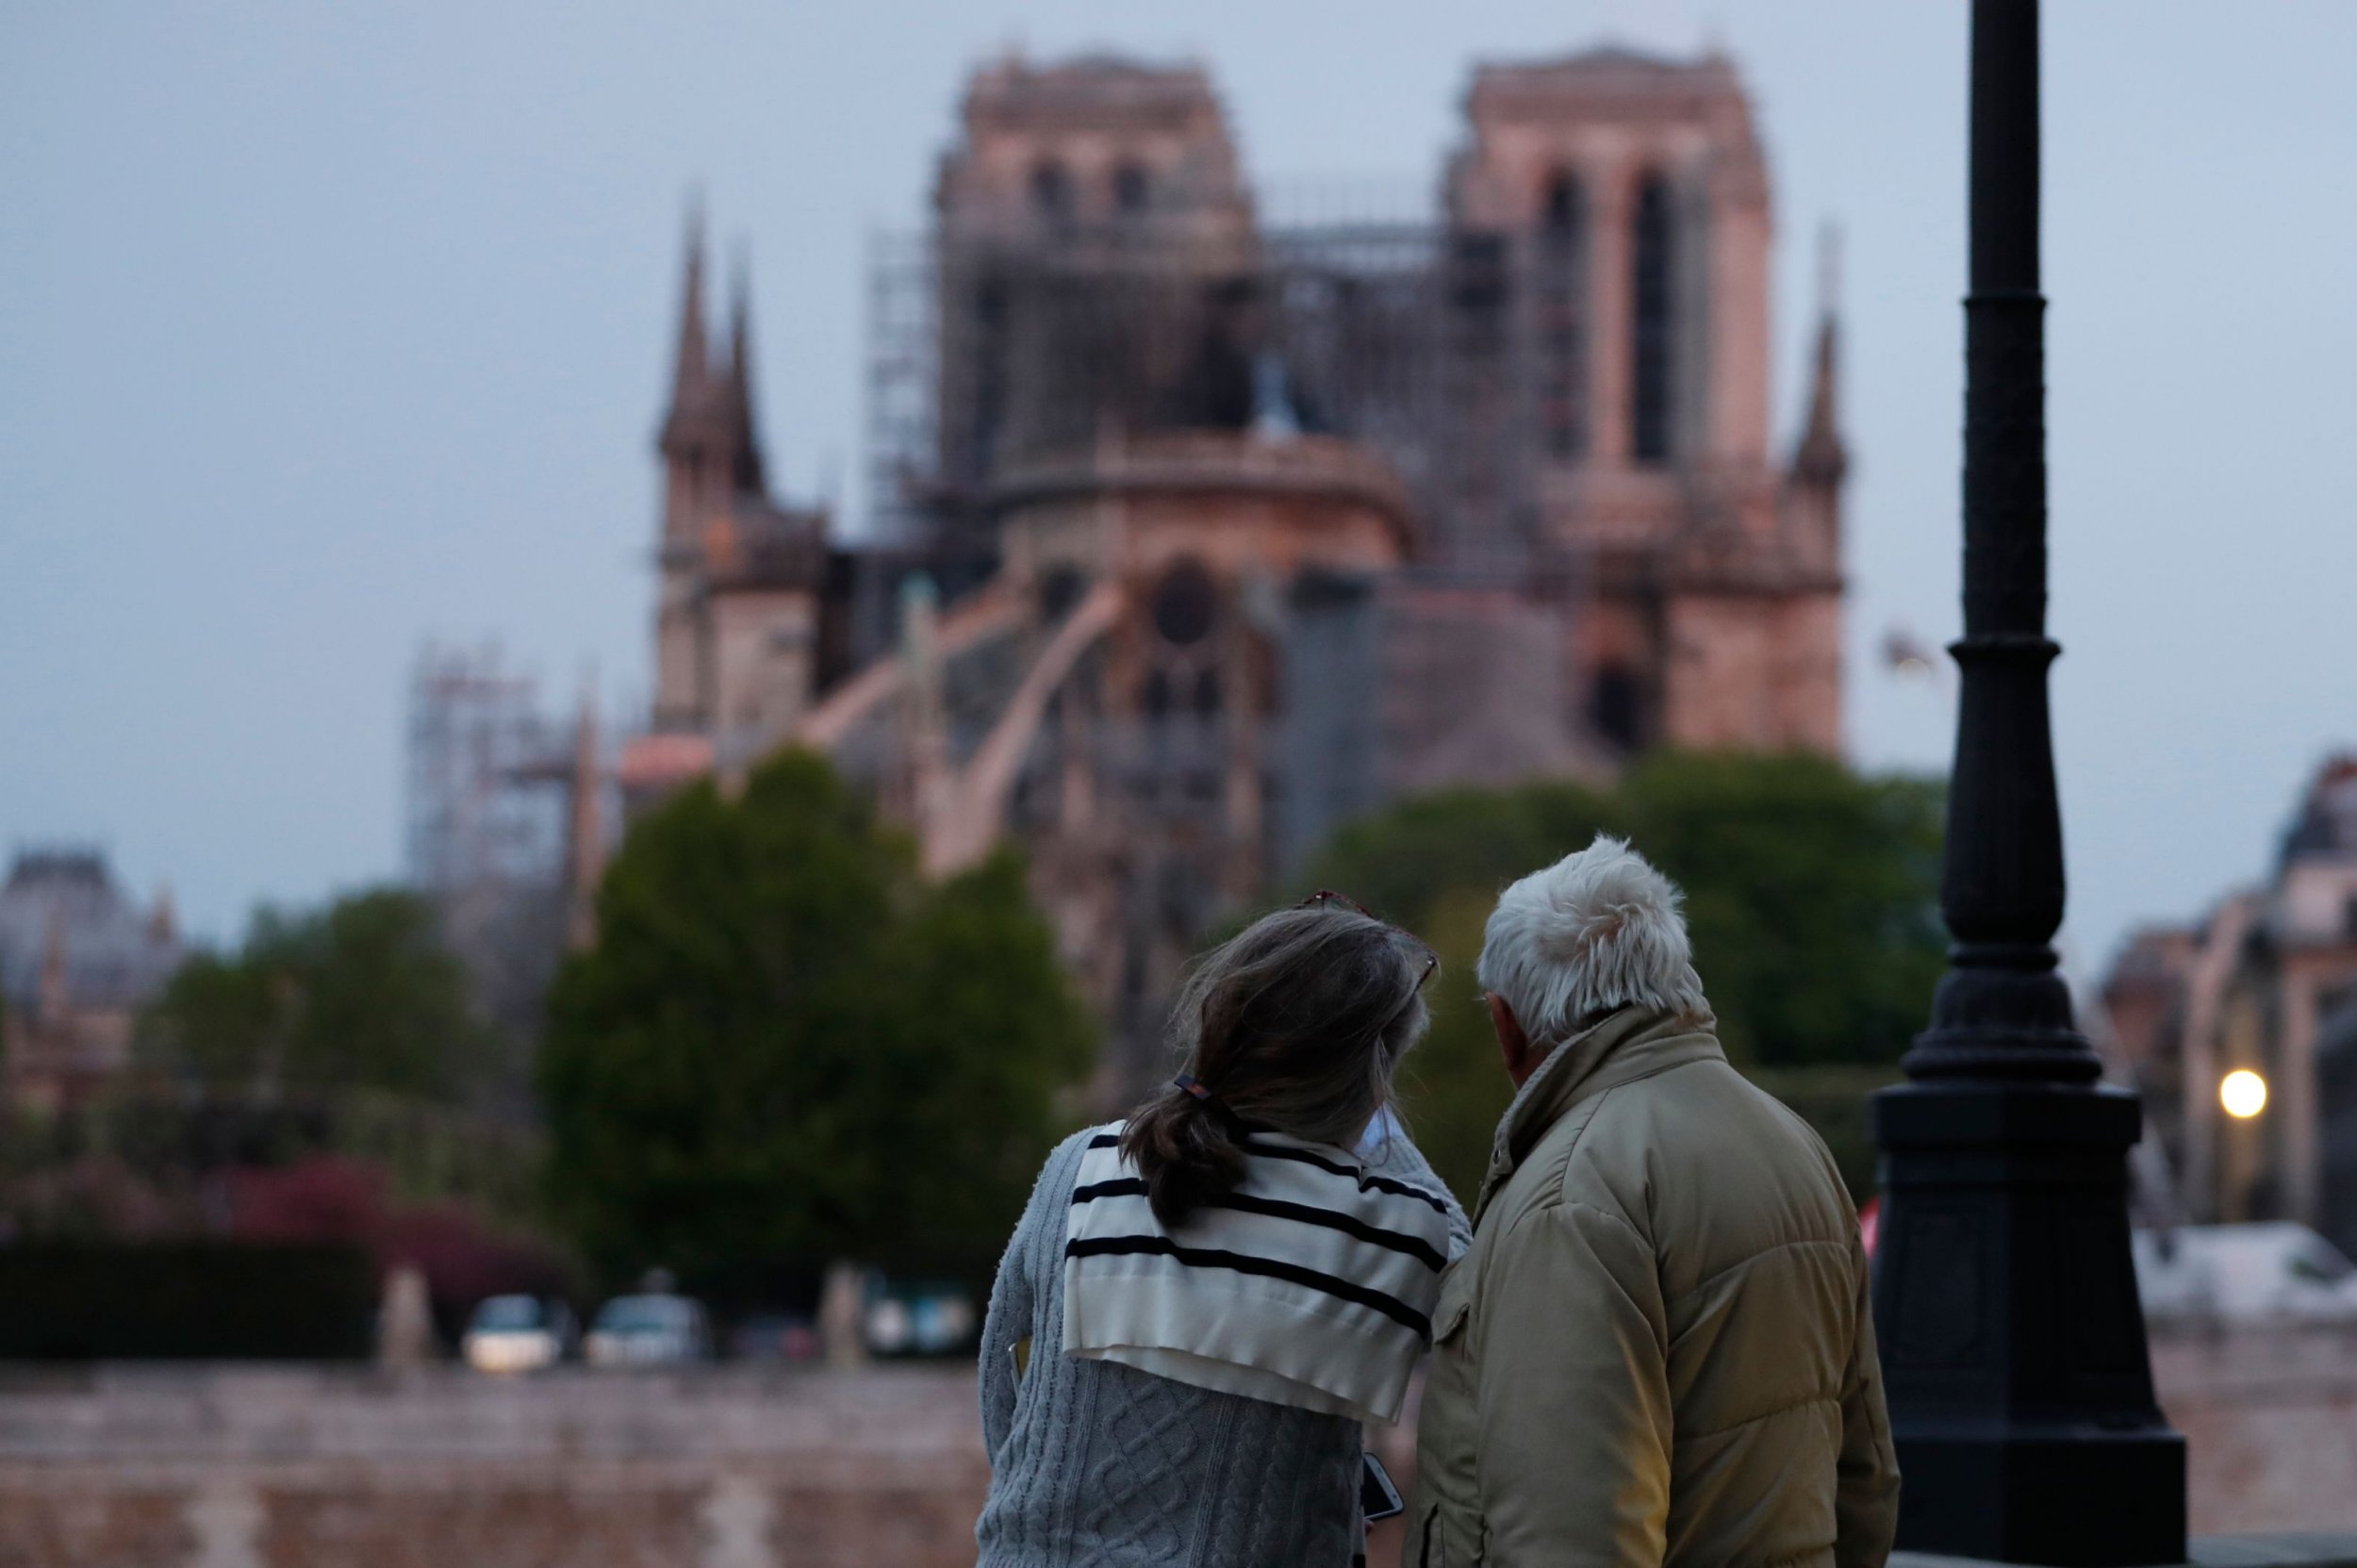 "A couple looks on as firefighters work to extinguish a fire at Notre-Dame Cathedral in Paris early on April 16, 2019. - A huge fire that devastated Notre-Dame Cathedral is ""under control"", the Paris fire brigade said early on April 16 after firefighters spent hours battling the flames. (Photo by Zakaria ABDELKAFI / AFP)ZAKARIA ABDELKAFI/AFP/Getty Images"